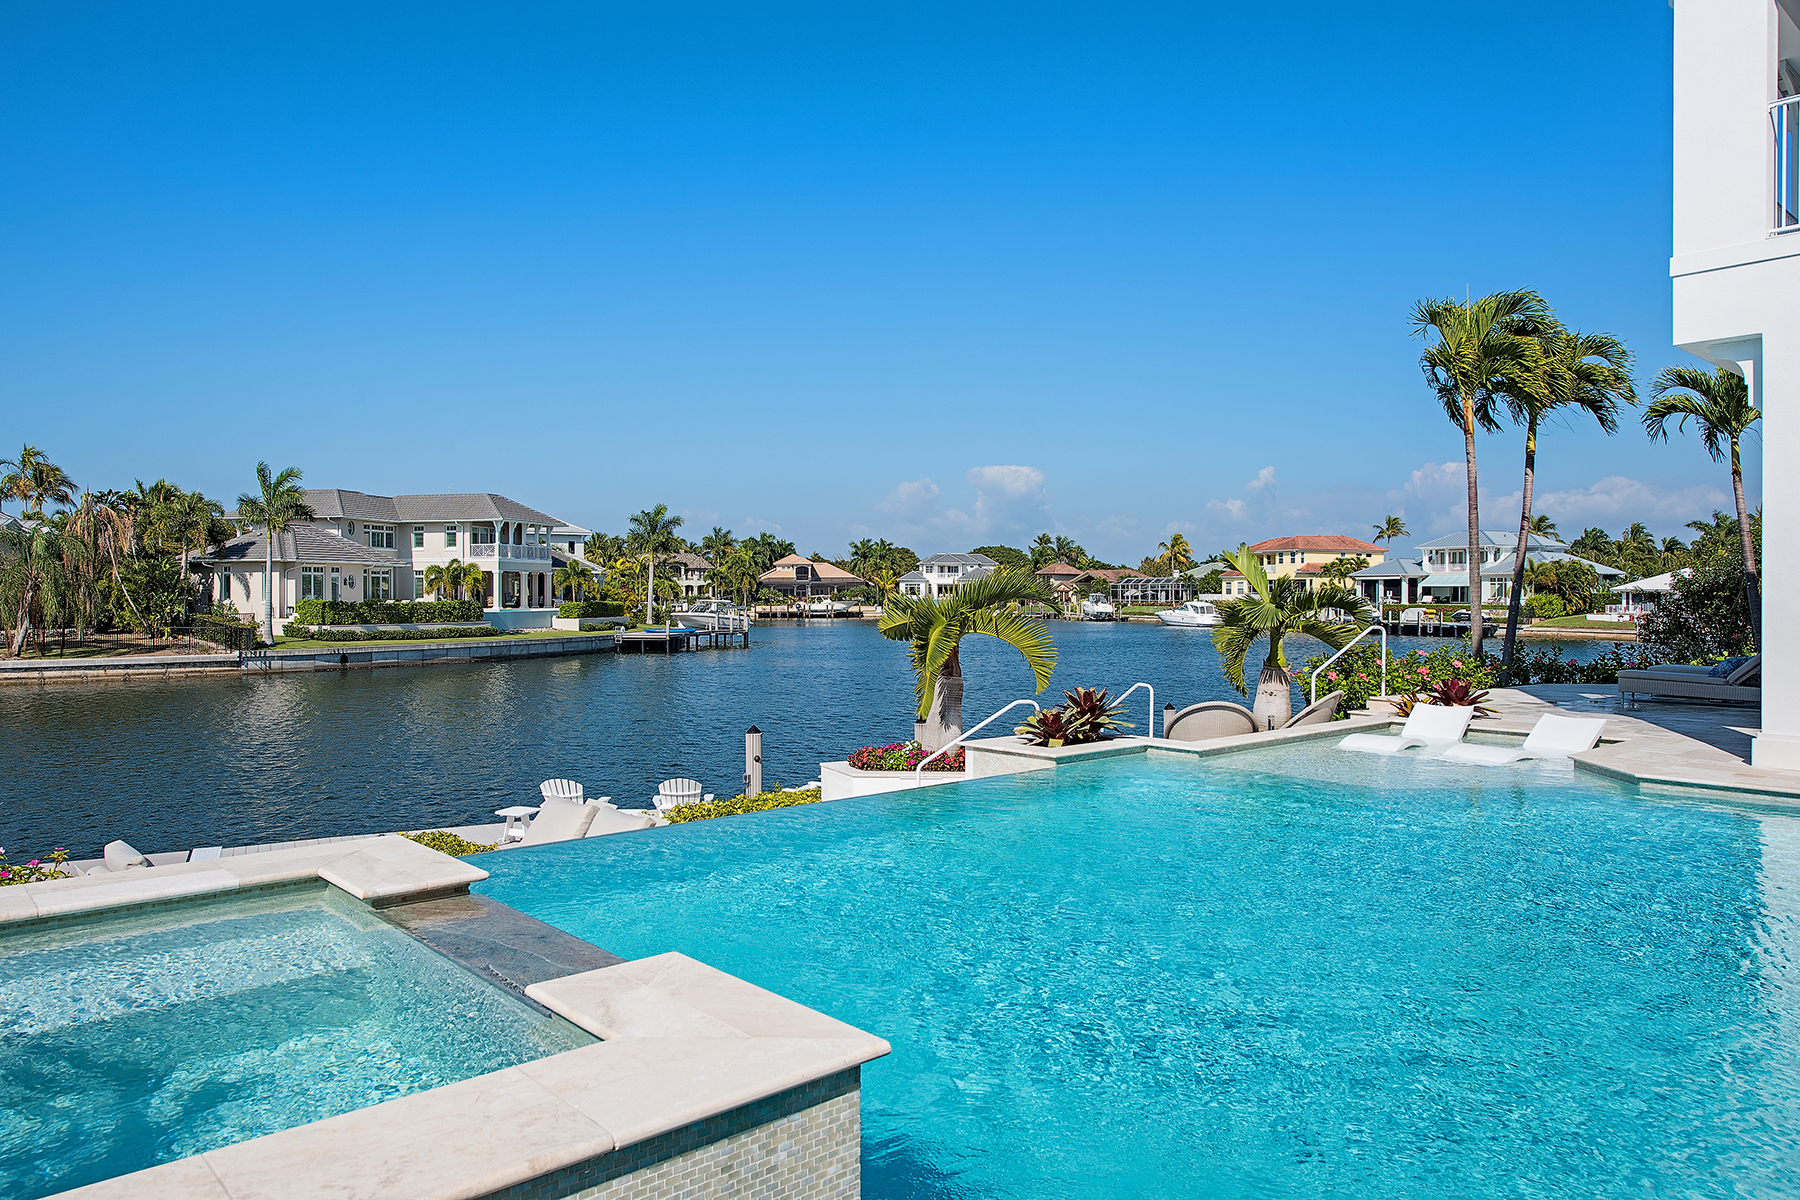 Single Family Home for Sale at PARK SHORE 329 Neapolitan Way, Naples, Florida 34103 United States